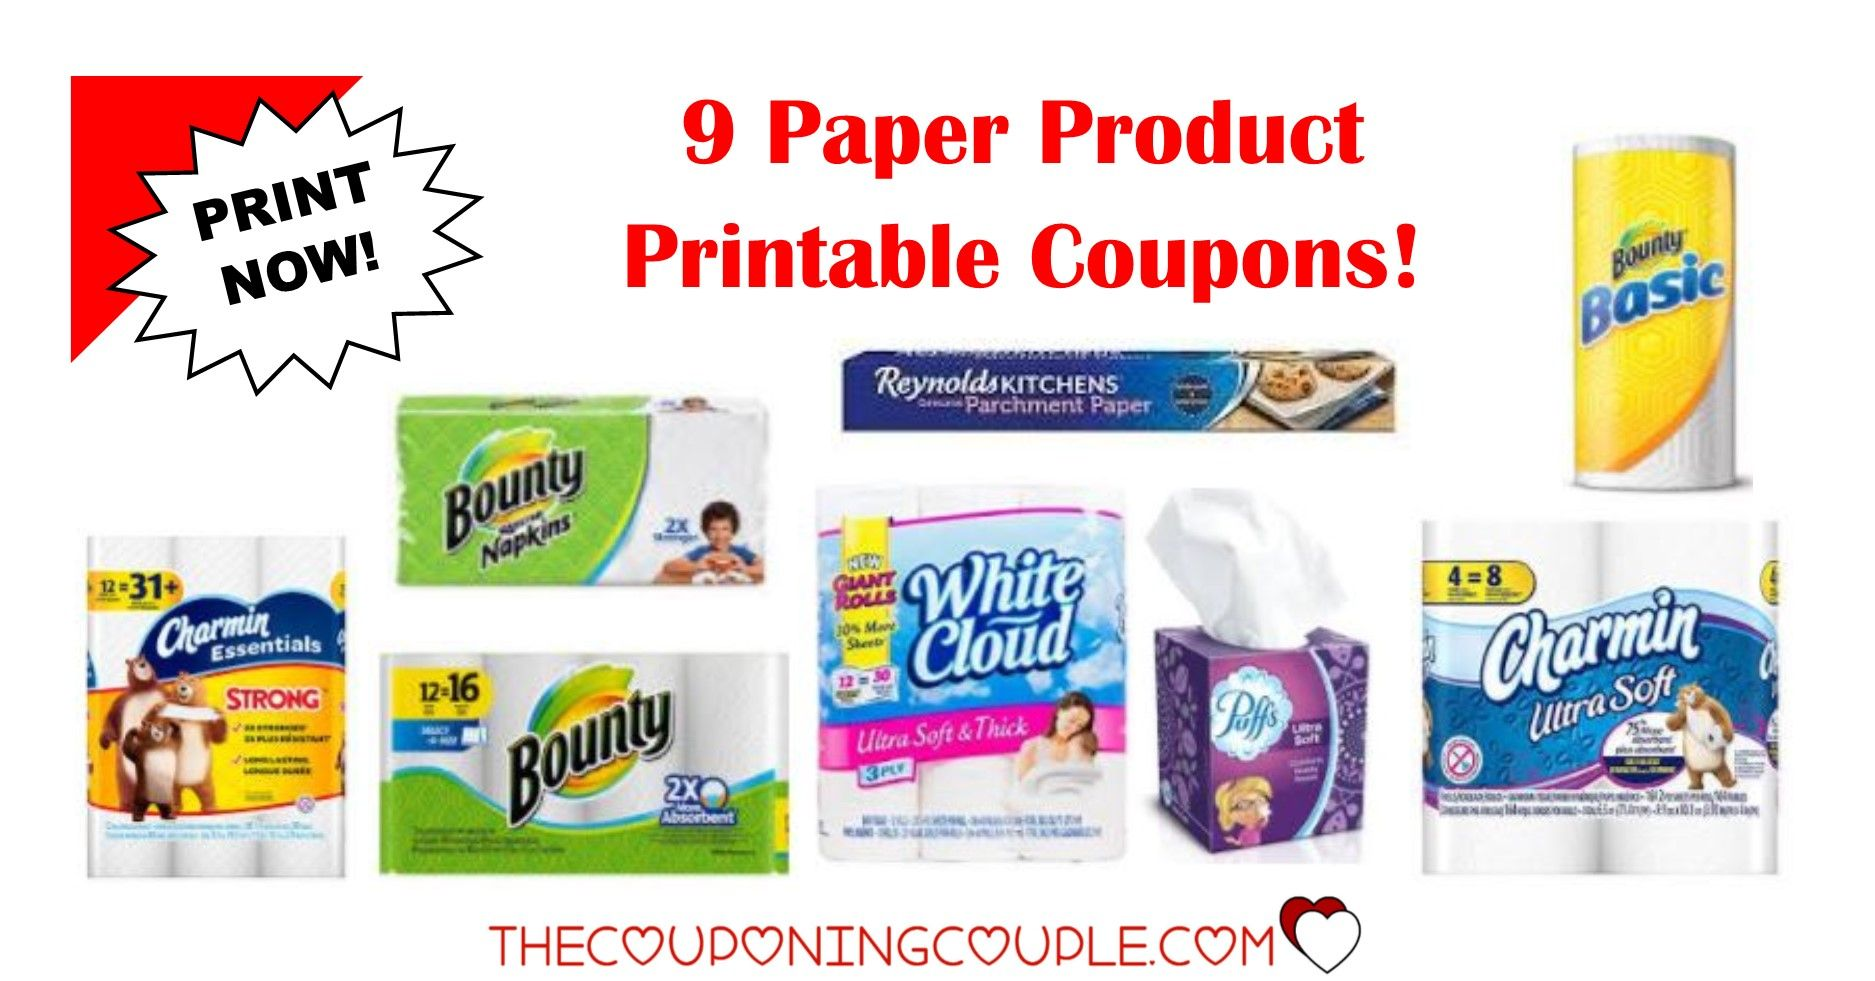 7 paper product printable coupons ~ bounty, charmin & more